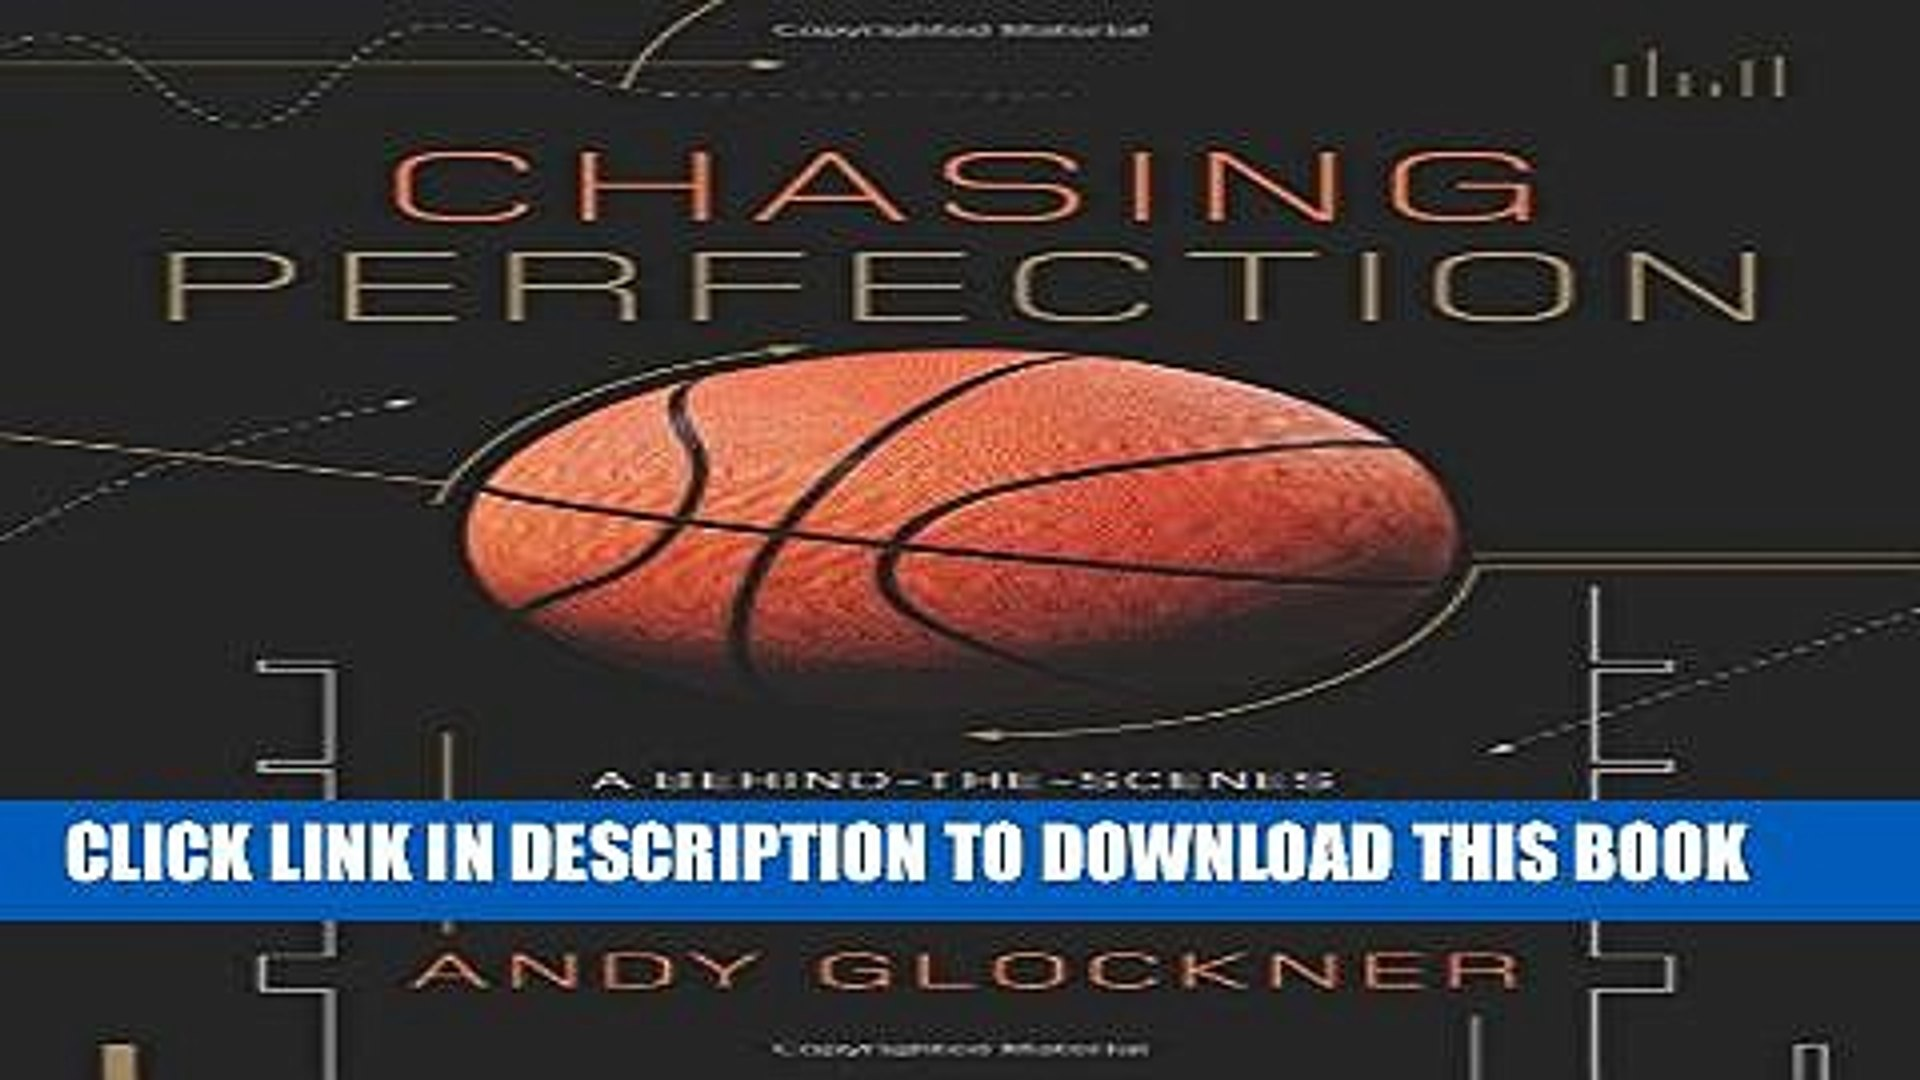 Collection Book Chasing Perfection: A Behind-the-Scenes Look at the High-Stakes Game of Creating